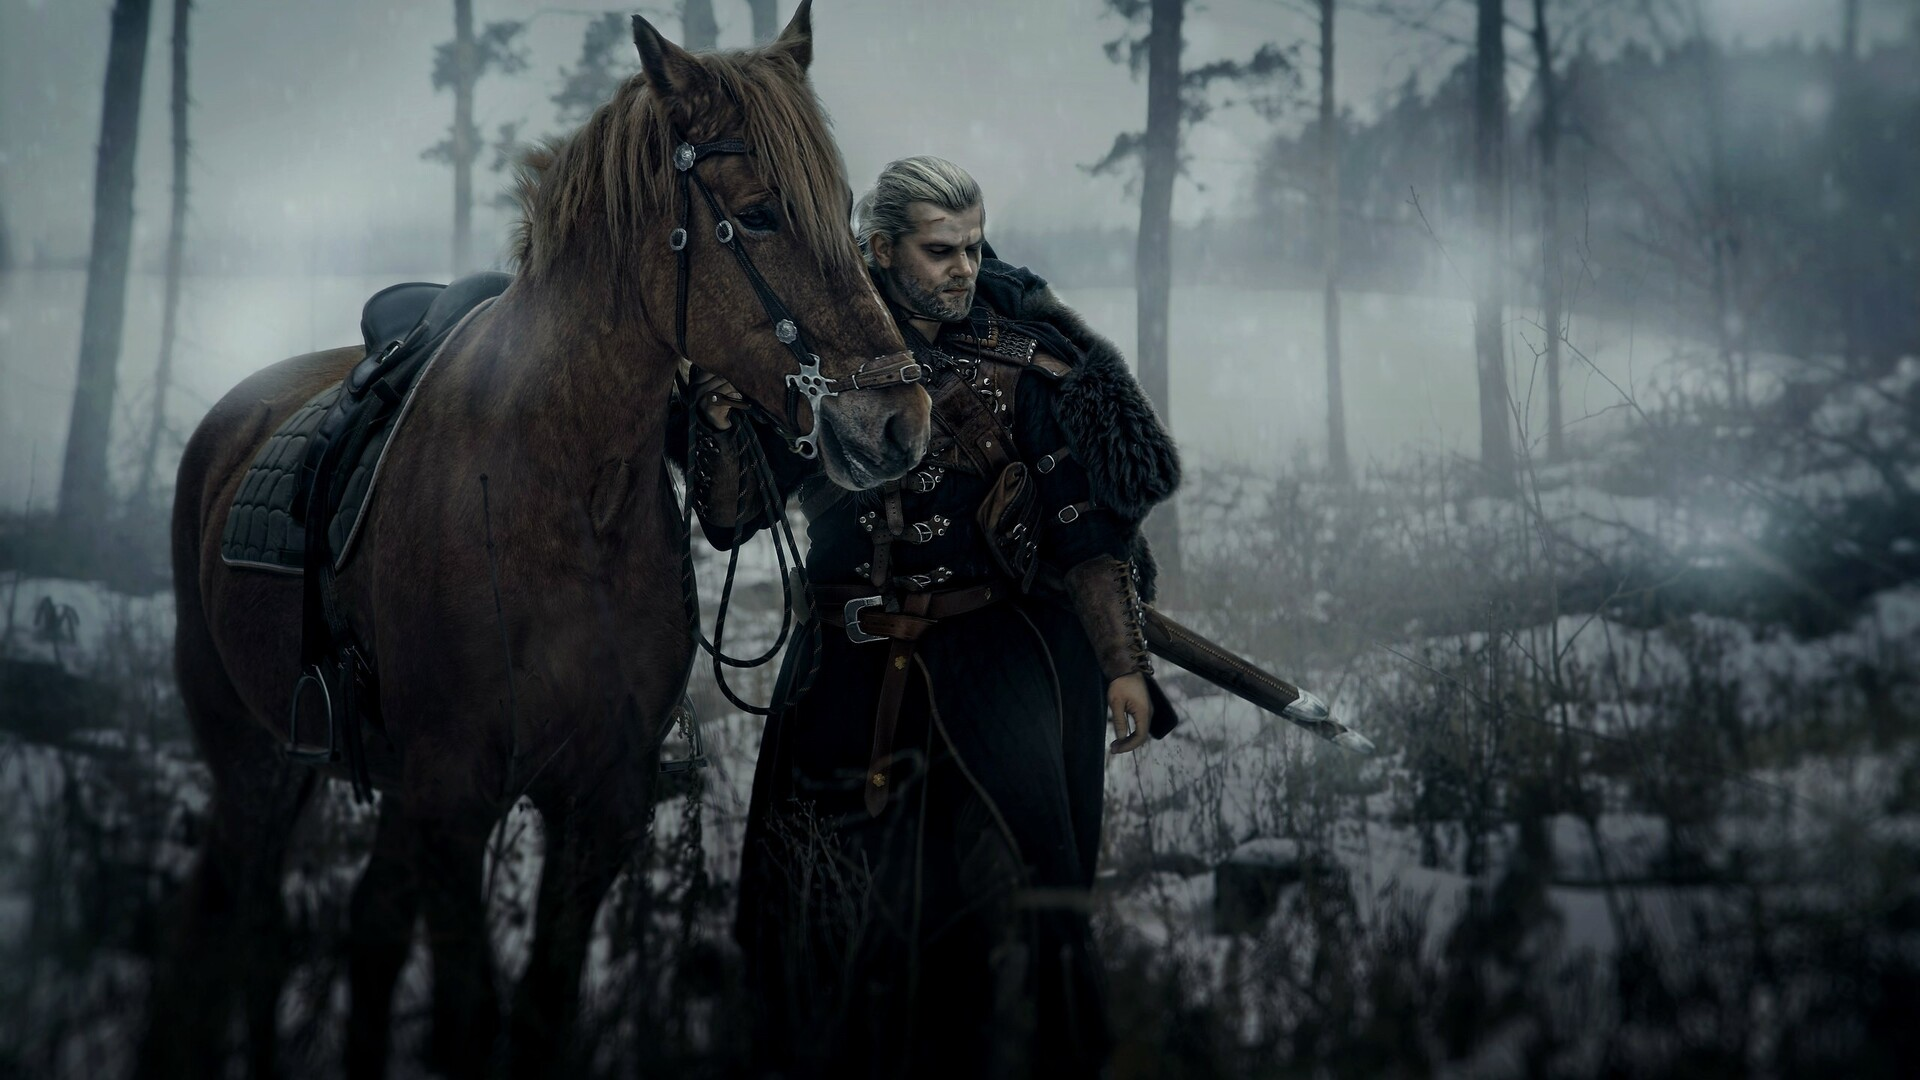 Girl Superheroes Wallpaper 1440p 1920x1080 The Witcher Geralt Of Rivia Cosplay Laptop Full